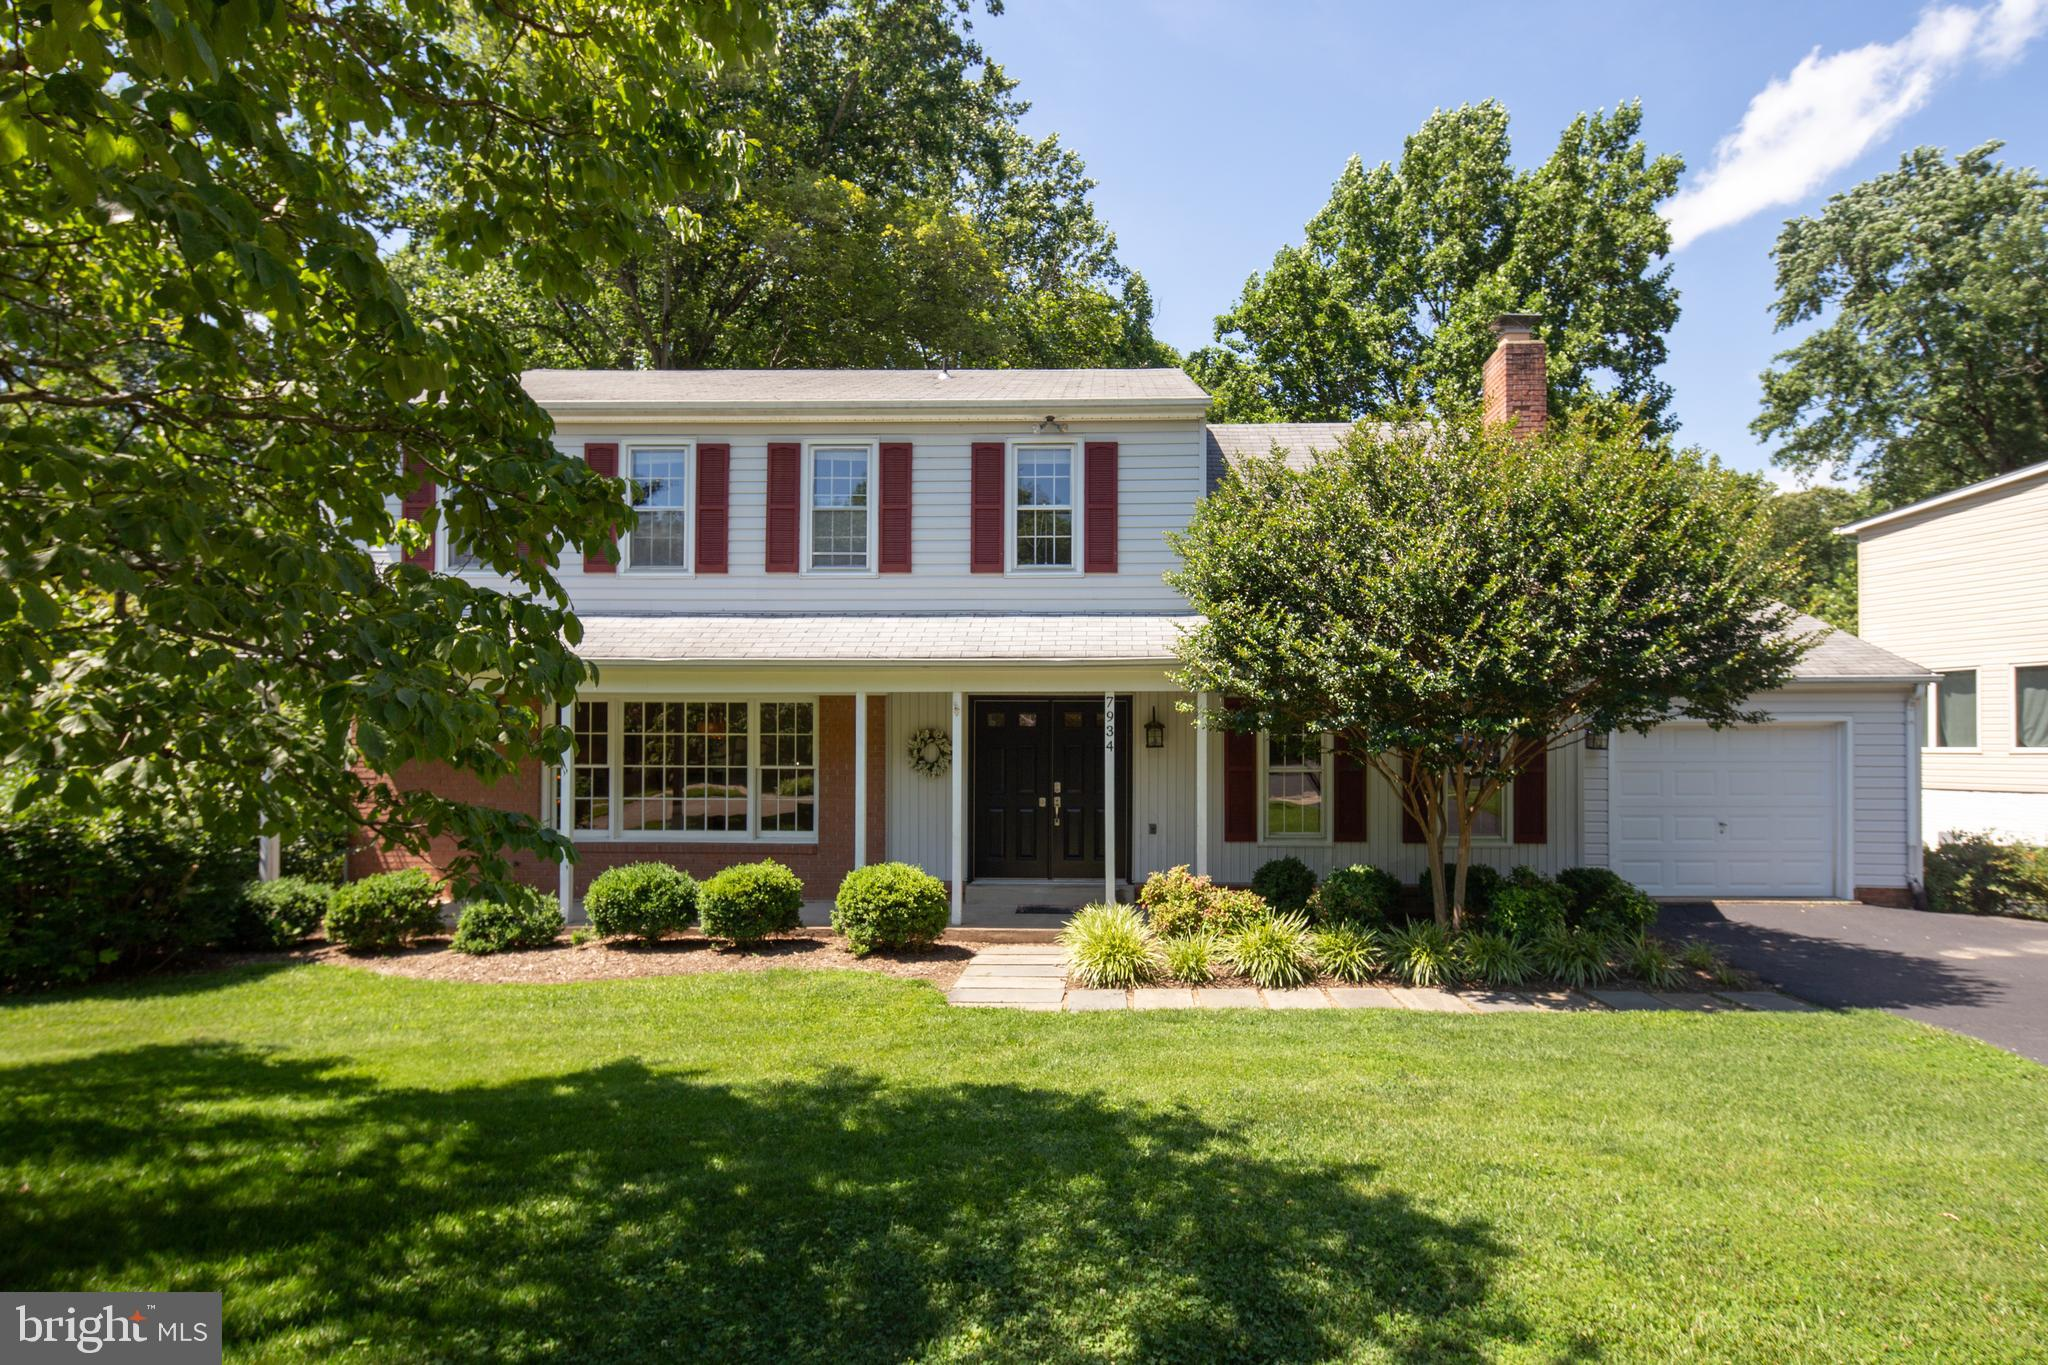 Saratoga is the place to be! A beautiful community, offering playgrounds, basketball courts, tot lots and pool membership!  A commuters dream with easy access to Fairfax County Parkway and all major highways, close to Springfield Metro and Metro Bus Stop to Pentagon, shortens your commute! Everything you could want at Springfield mall 5 minutes away, including state-of-the-art movie theaters, and shopping and dining galore. Wegmans only 10 mins away!  This premium lot, is easily one of the largest in the subdivision and backs to the Cross County Trail! Perfect for weekends hiking, jogging or mountain biking in the outdoors -An adventure of stepping stones, wooden bridges and sparkling streams right at your doorstep! Enjoy gorgeous views, lush greenery and the privacy that only this lot can offer, while you kick back on the deck with your favorite drink! All the room and space you need on three levels, without worries of storage thanks to the glorious garage and massive unfinished storage area in the basement! Drop your bags and stress off in the foyer before wandering to your favorite room, which might be the gourmet kitchen at the heart of the home, with stainless appliances, granite counter tops, custom barn doors concealing a generous pantry and the convenience of an eat-in table space. All perfectly situated leading into the dining room, great for entertaining, or into the family room for lounging or snuggling up by the fireplace for movie night. Retreat to the upstairs bedrooms, all stylish with new plush carpeted floors - four in total plus an updated hall bathroom. The master suite is especially impressive with a bonus dressing area and vanity! Endless possibilities for the vast basement, which is walkout level, allowing abundant natural light and includes a true 5th bedroom and half bath - All the comfort and convenience your guests could need! WELCOME HOME!